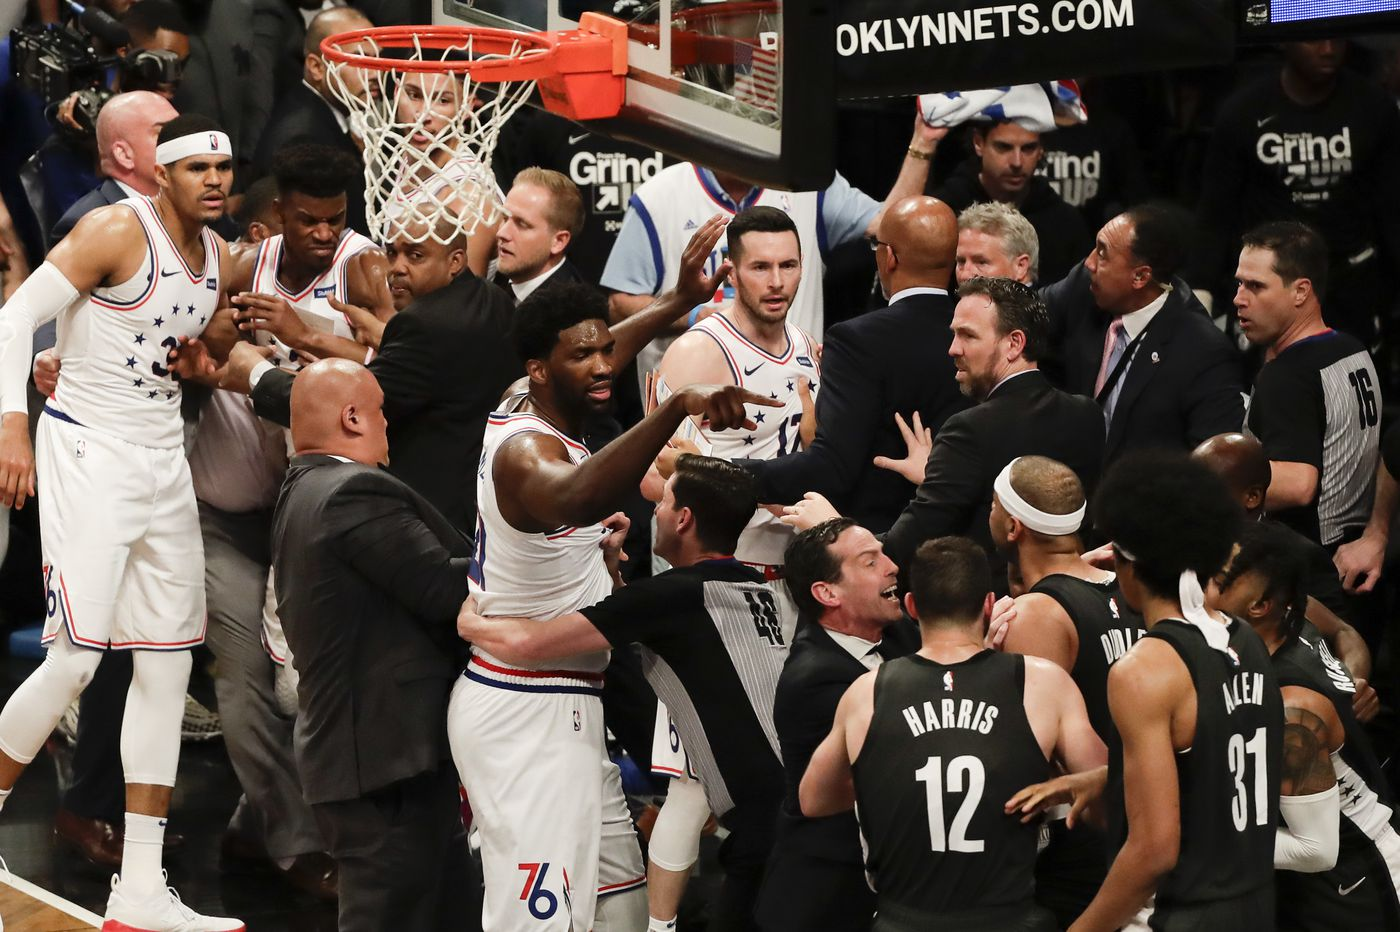 Sixers' Jimmy Butler, Nets' Jared Dudley fined after Game 4 melee